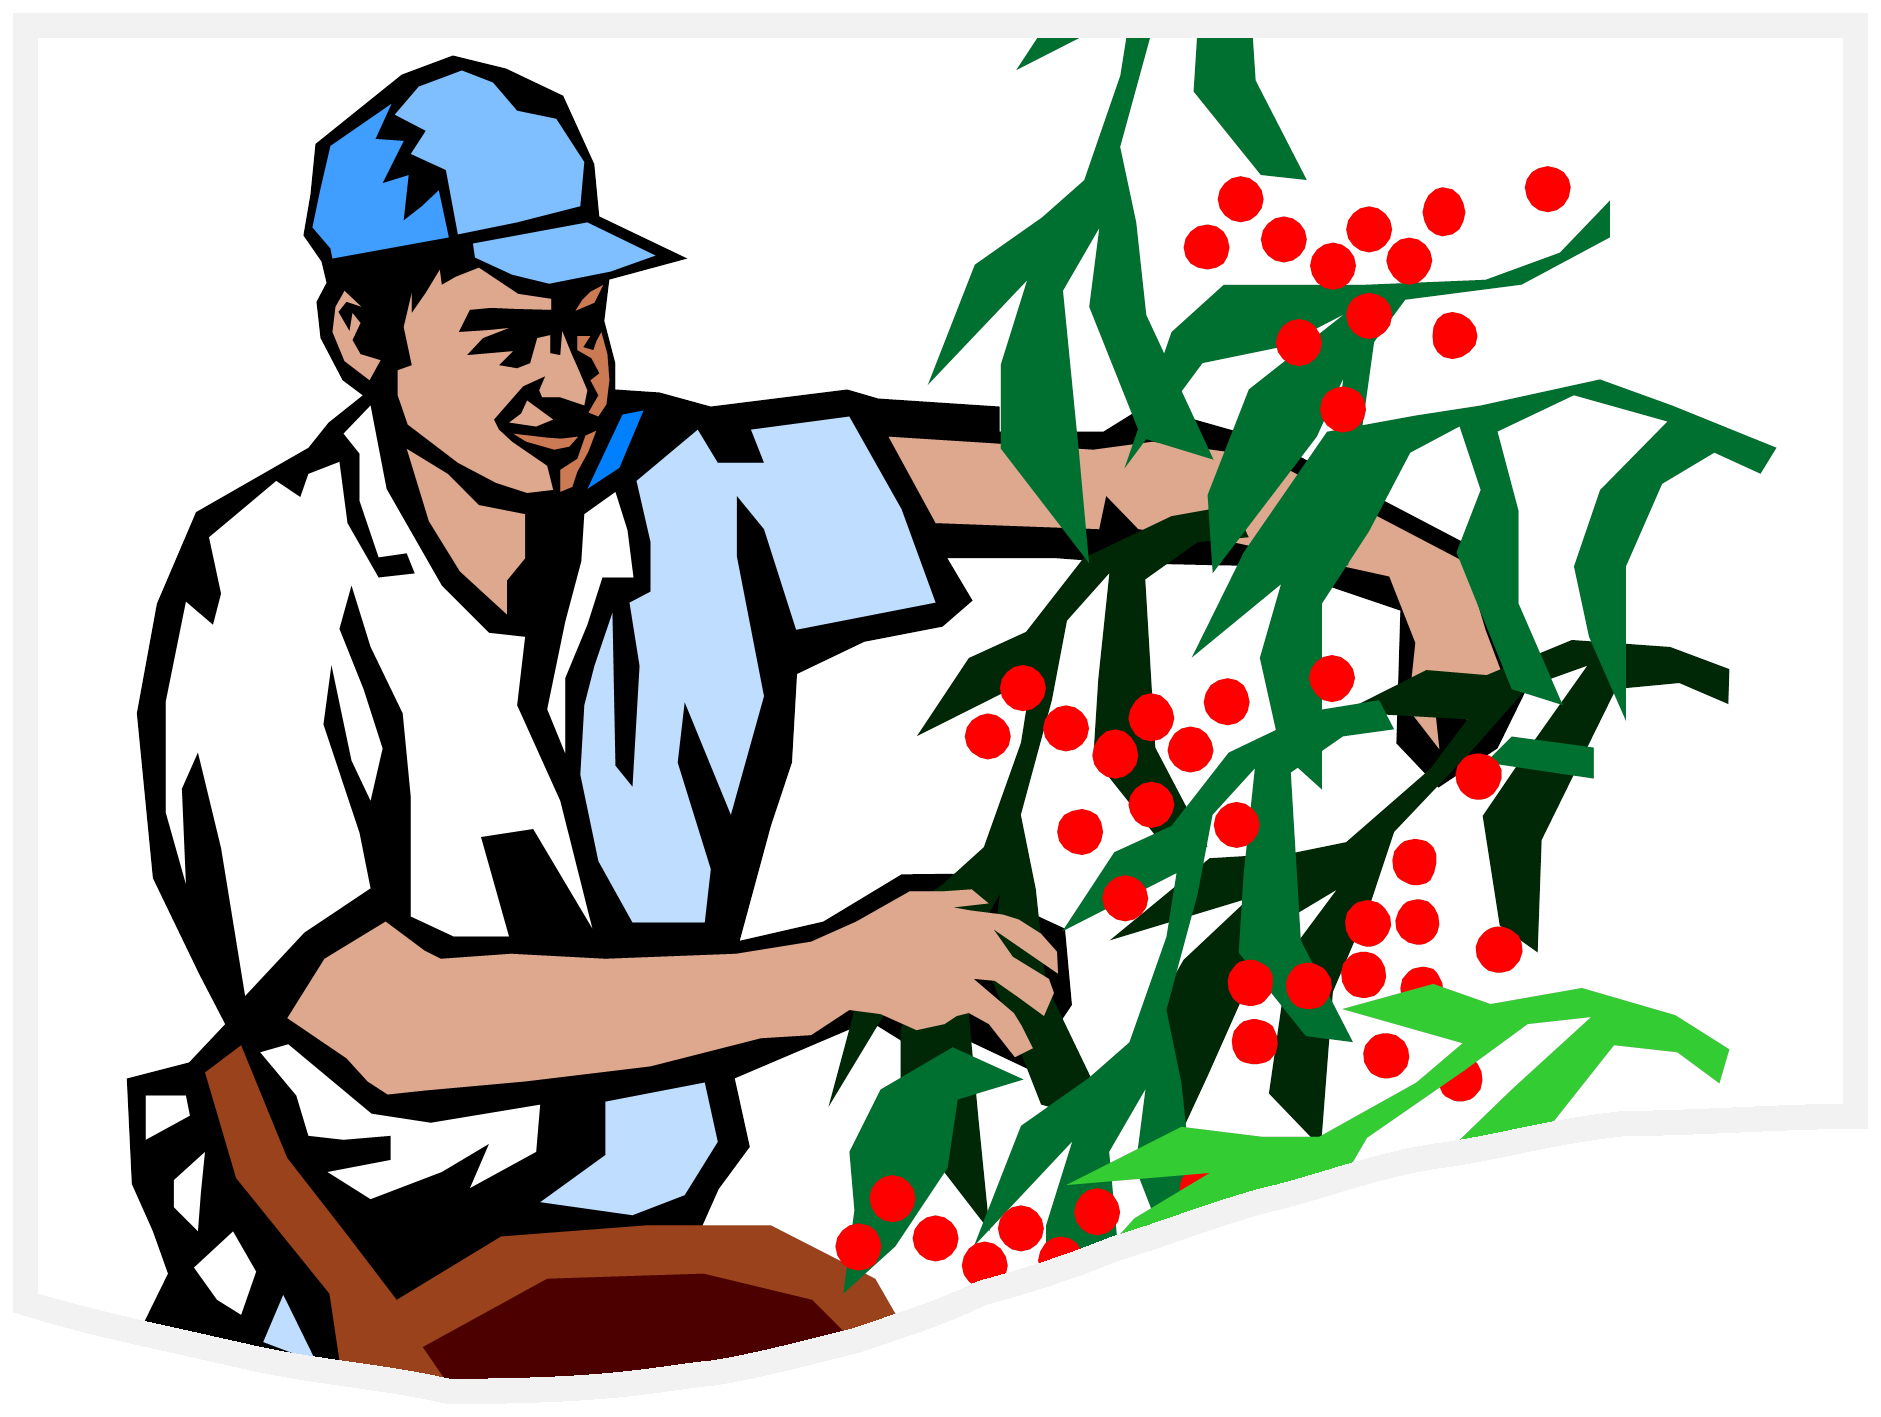 Contractor clipart hispanic person. State of oregon farm